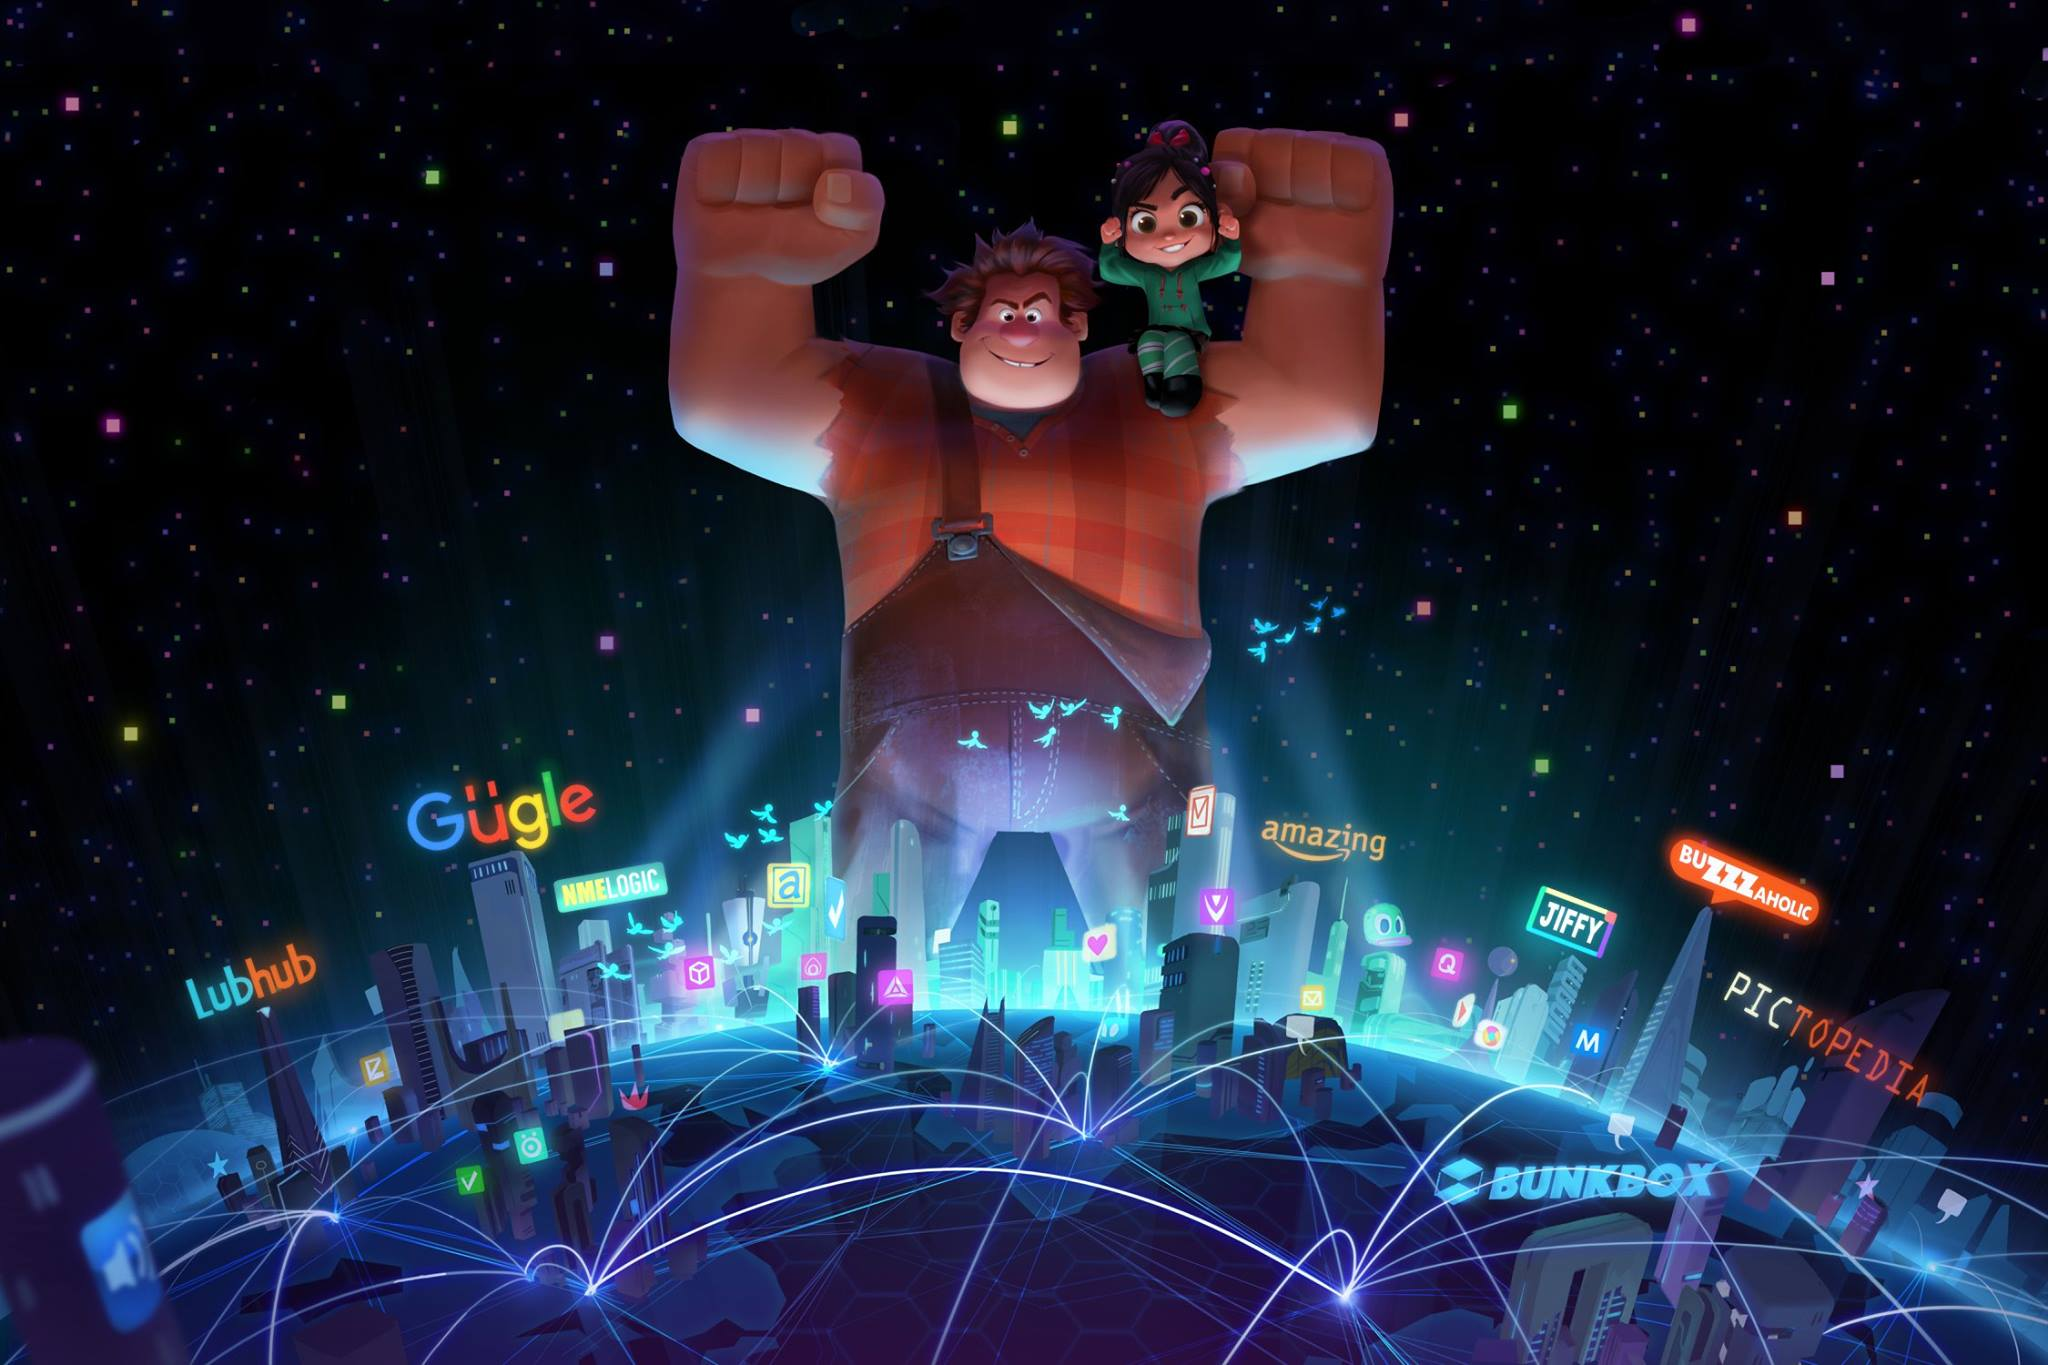 Wreck-It Ralph 2 Soundtrack Suggestions